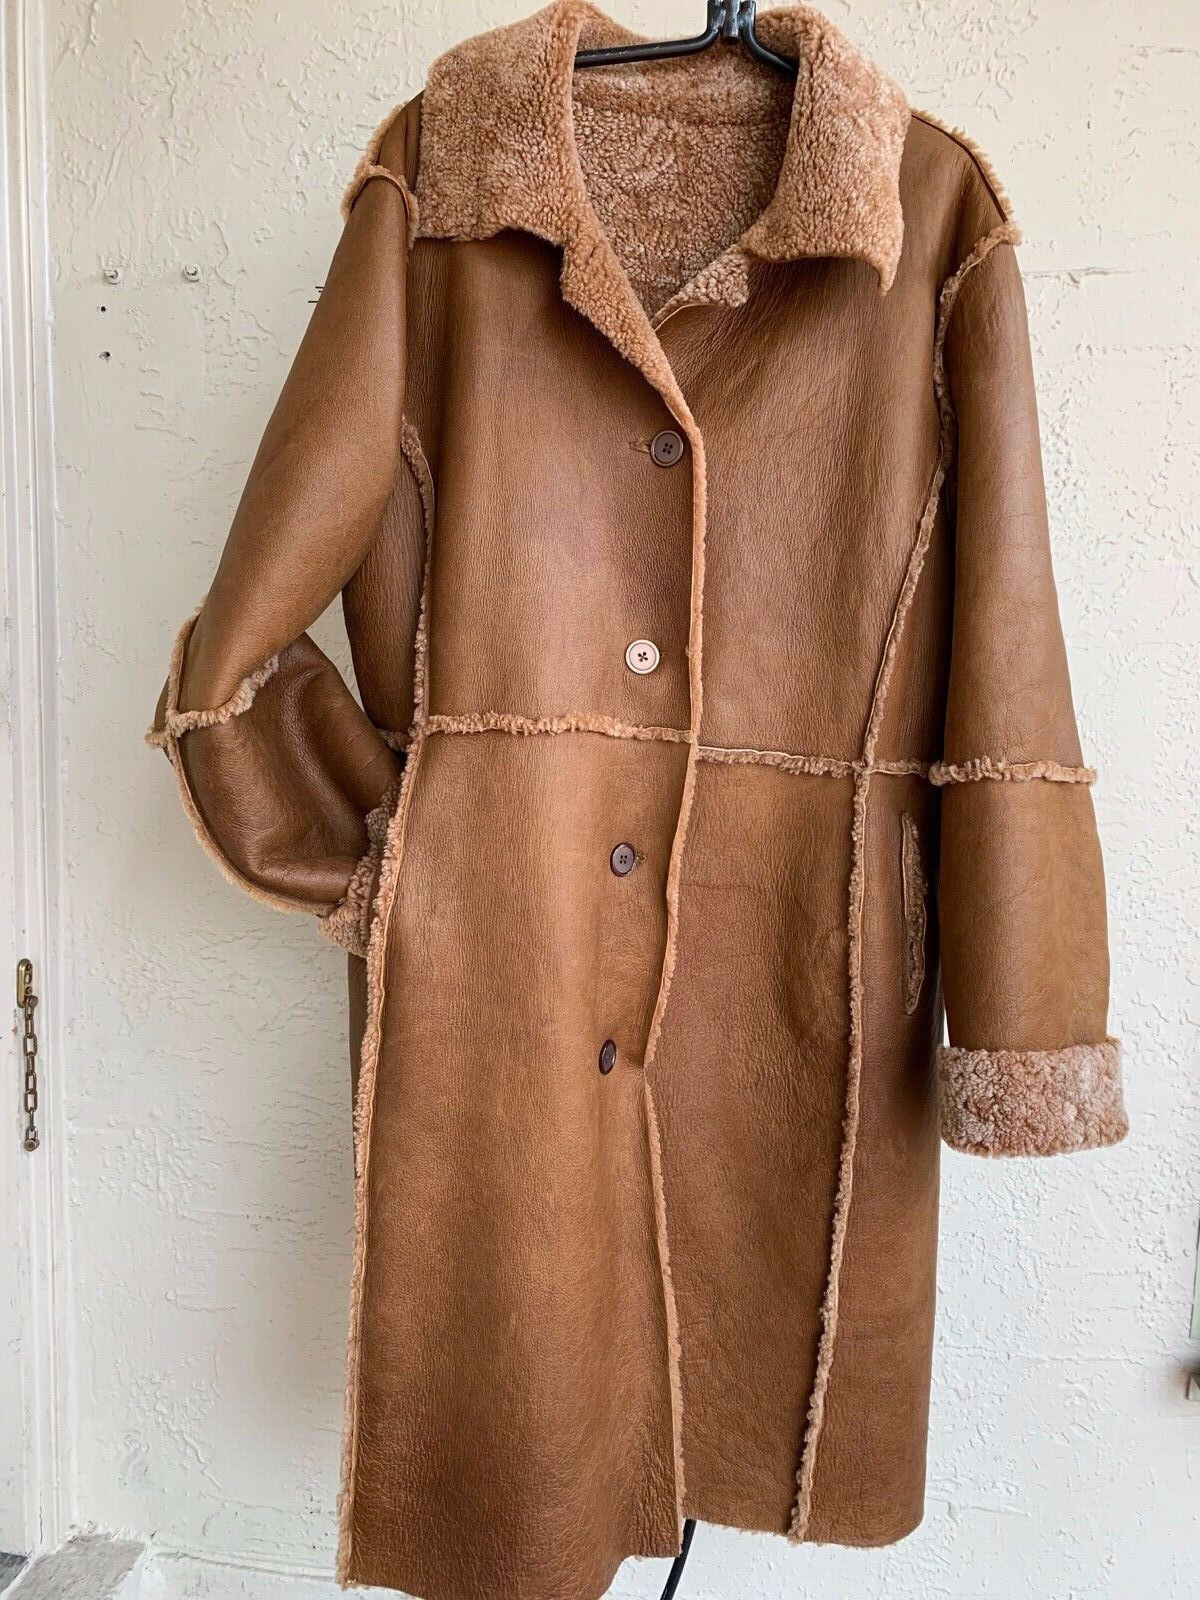 SAWYER OF NAPA NAPA NAPA LIGHTWEIGHT GENUINE SHEARLING SHEEPSKIN FUR LONG WOMENS COAT SZ L e43567